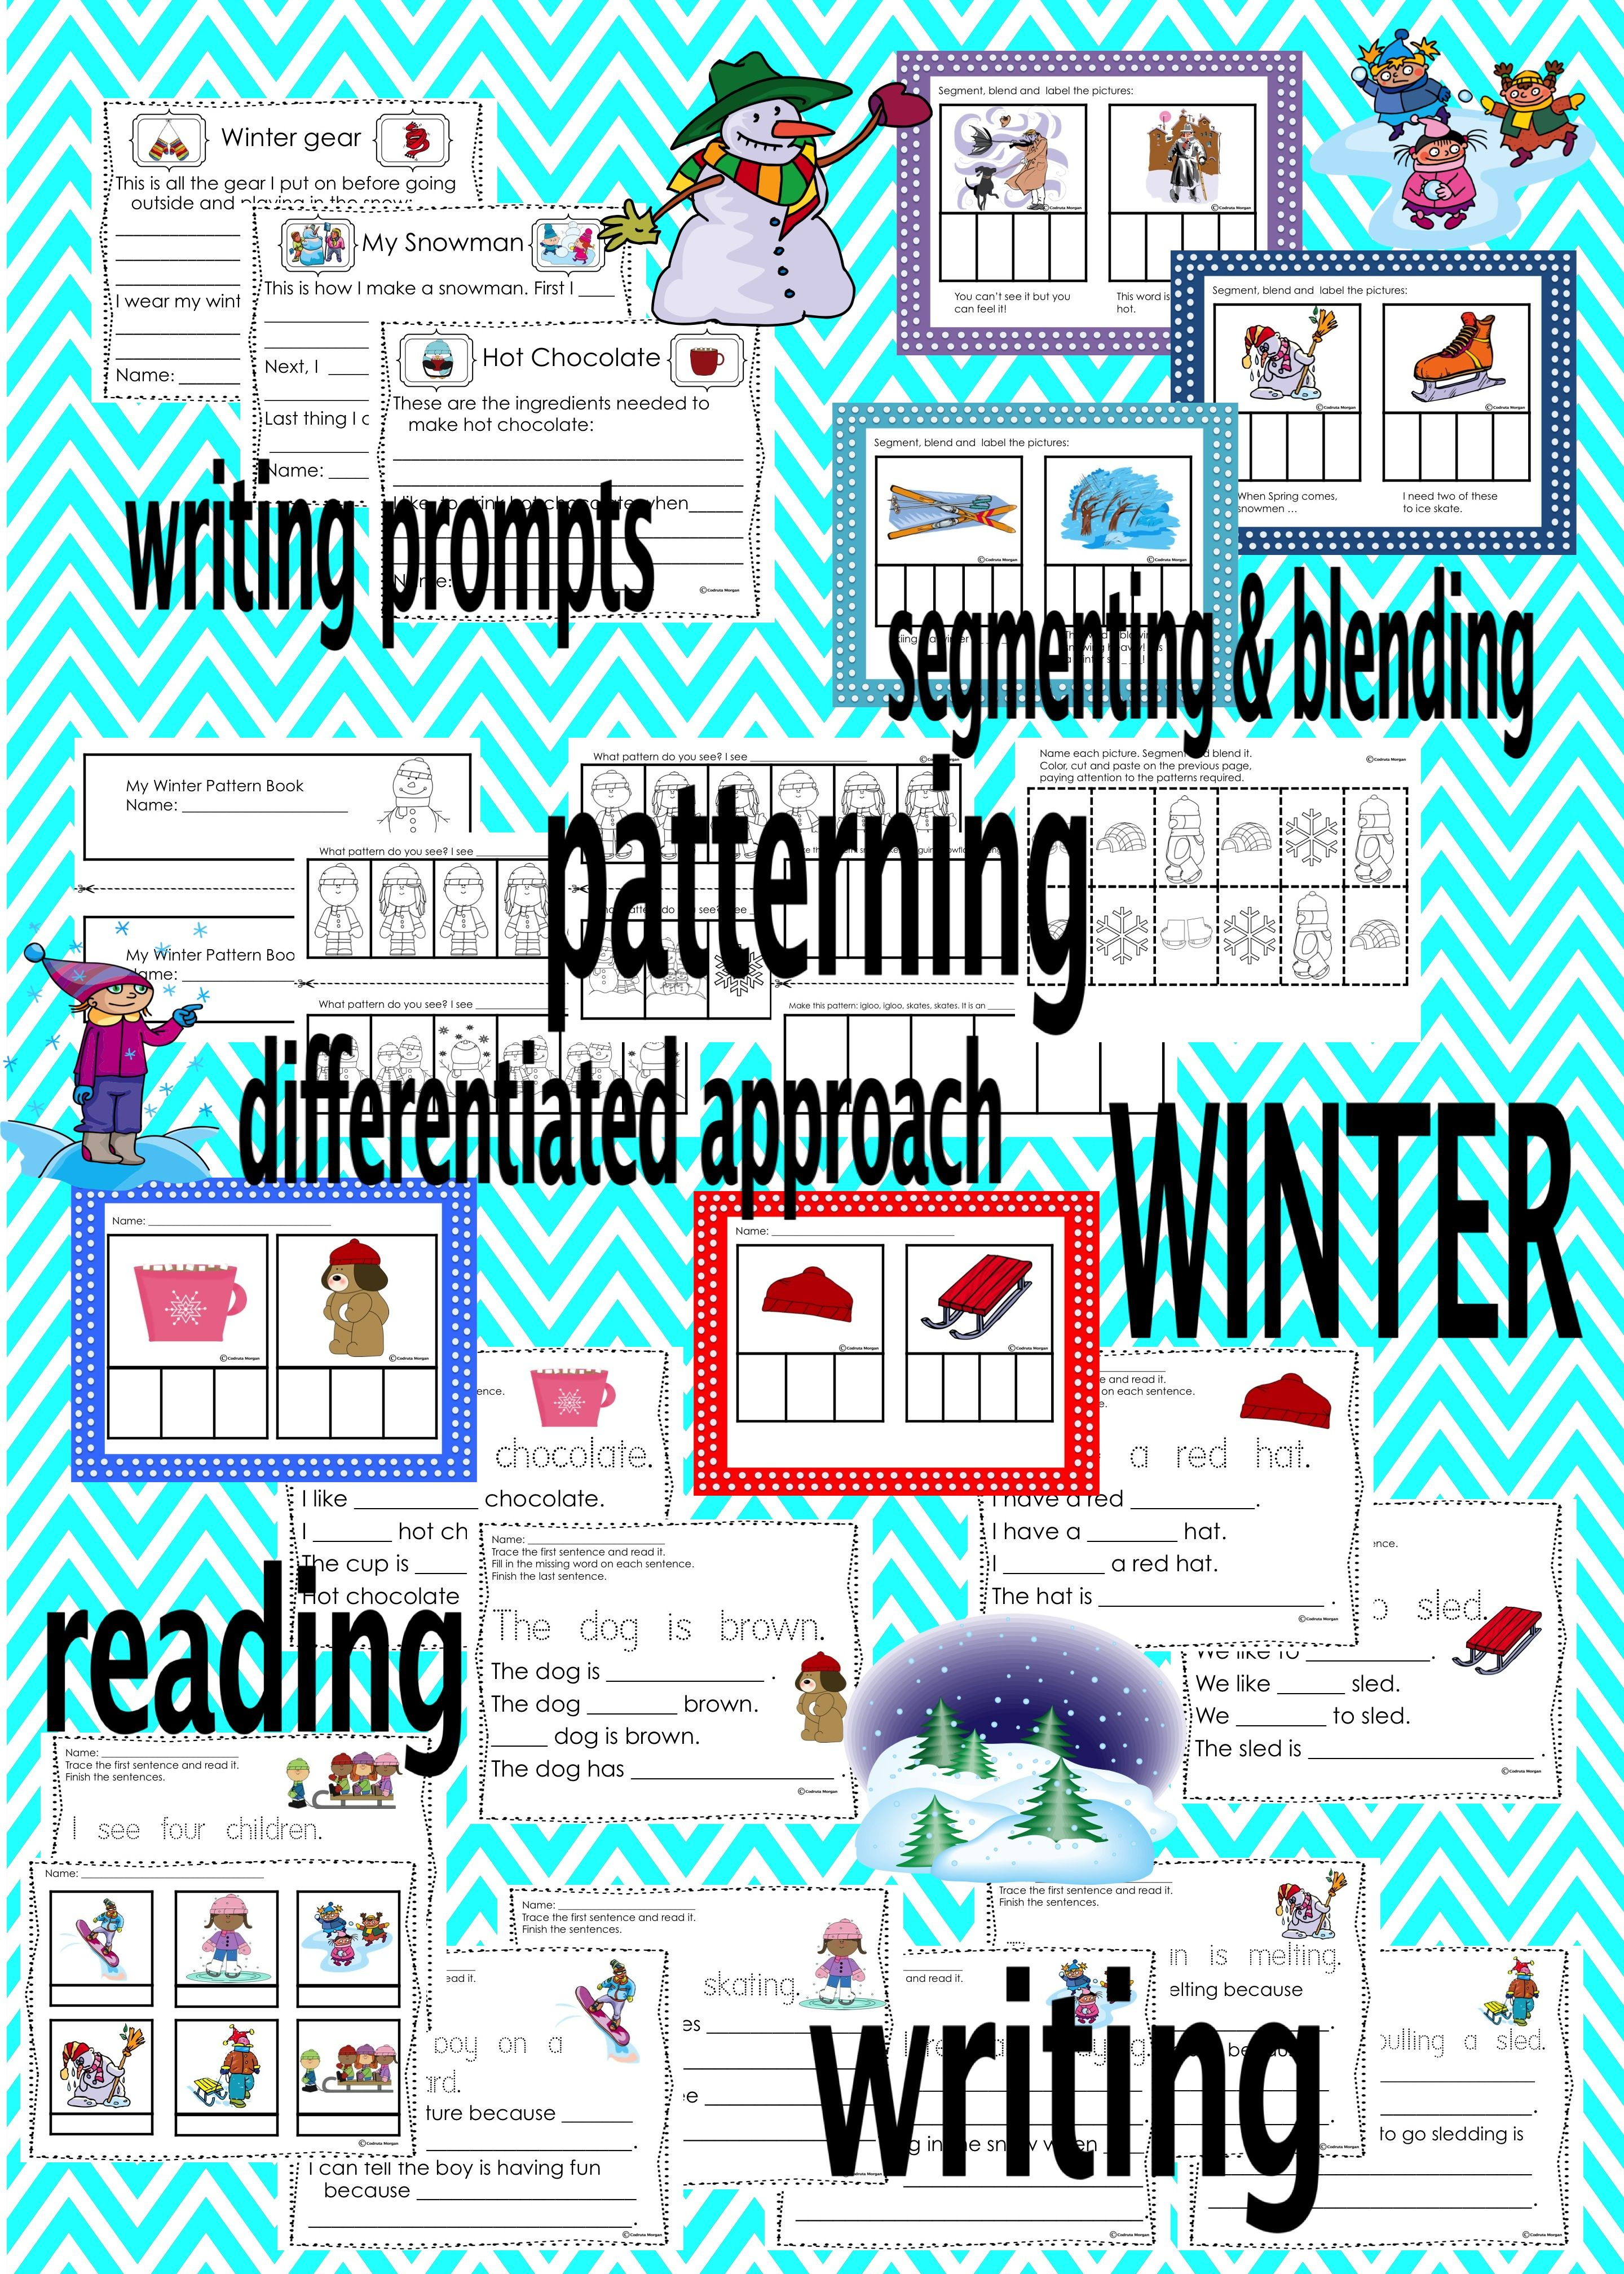 essay about winter morning Winter a morning describe essay - essay on why the development of nuclear power should be halted: you have attended a seminar on aforementioned.